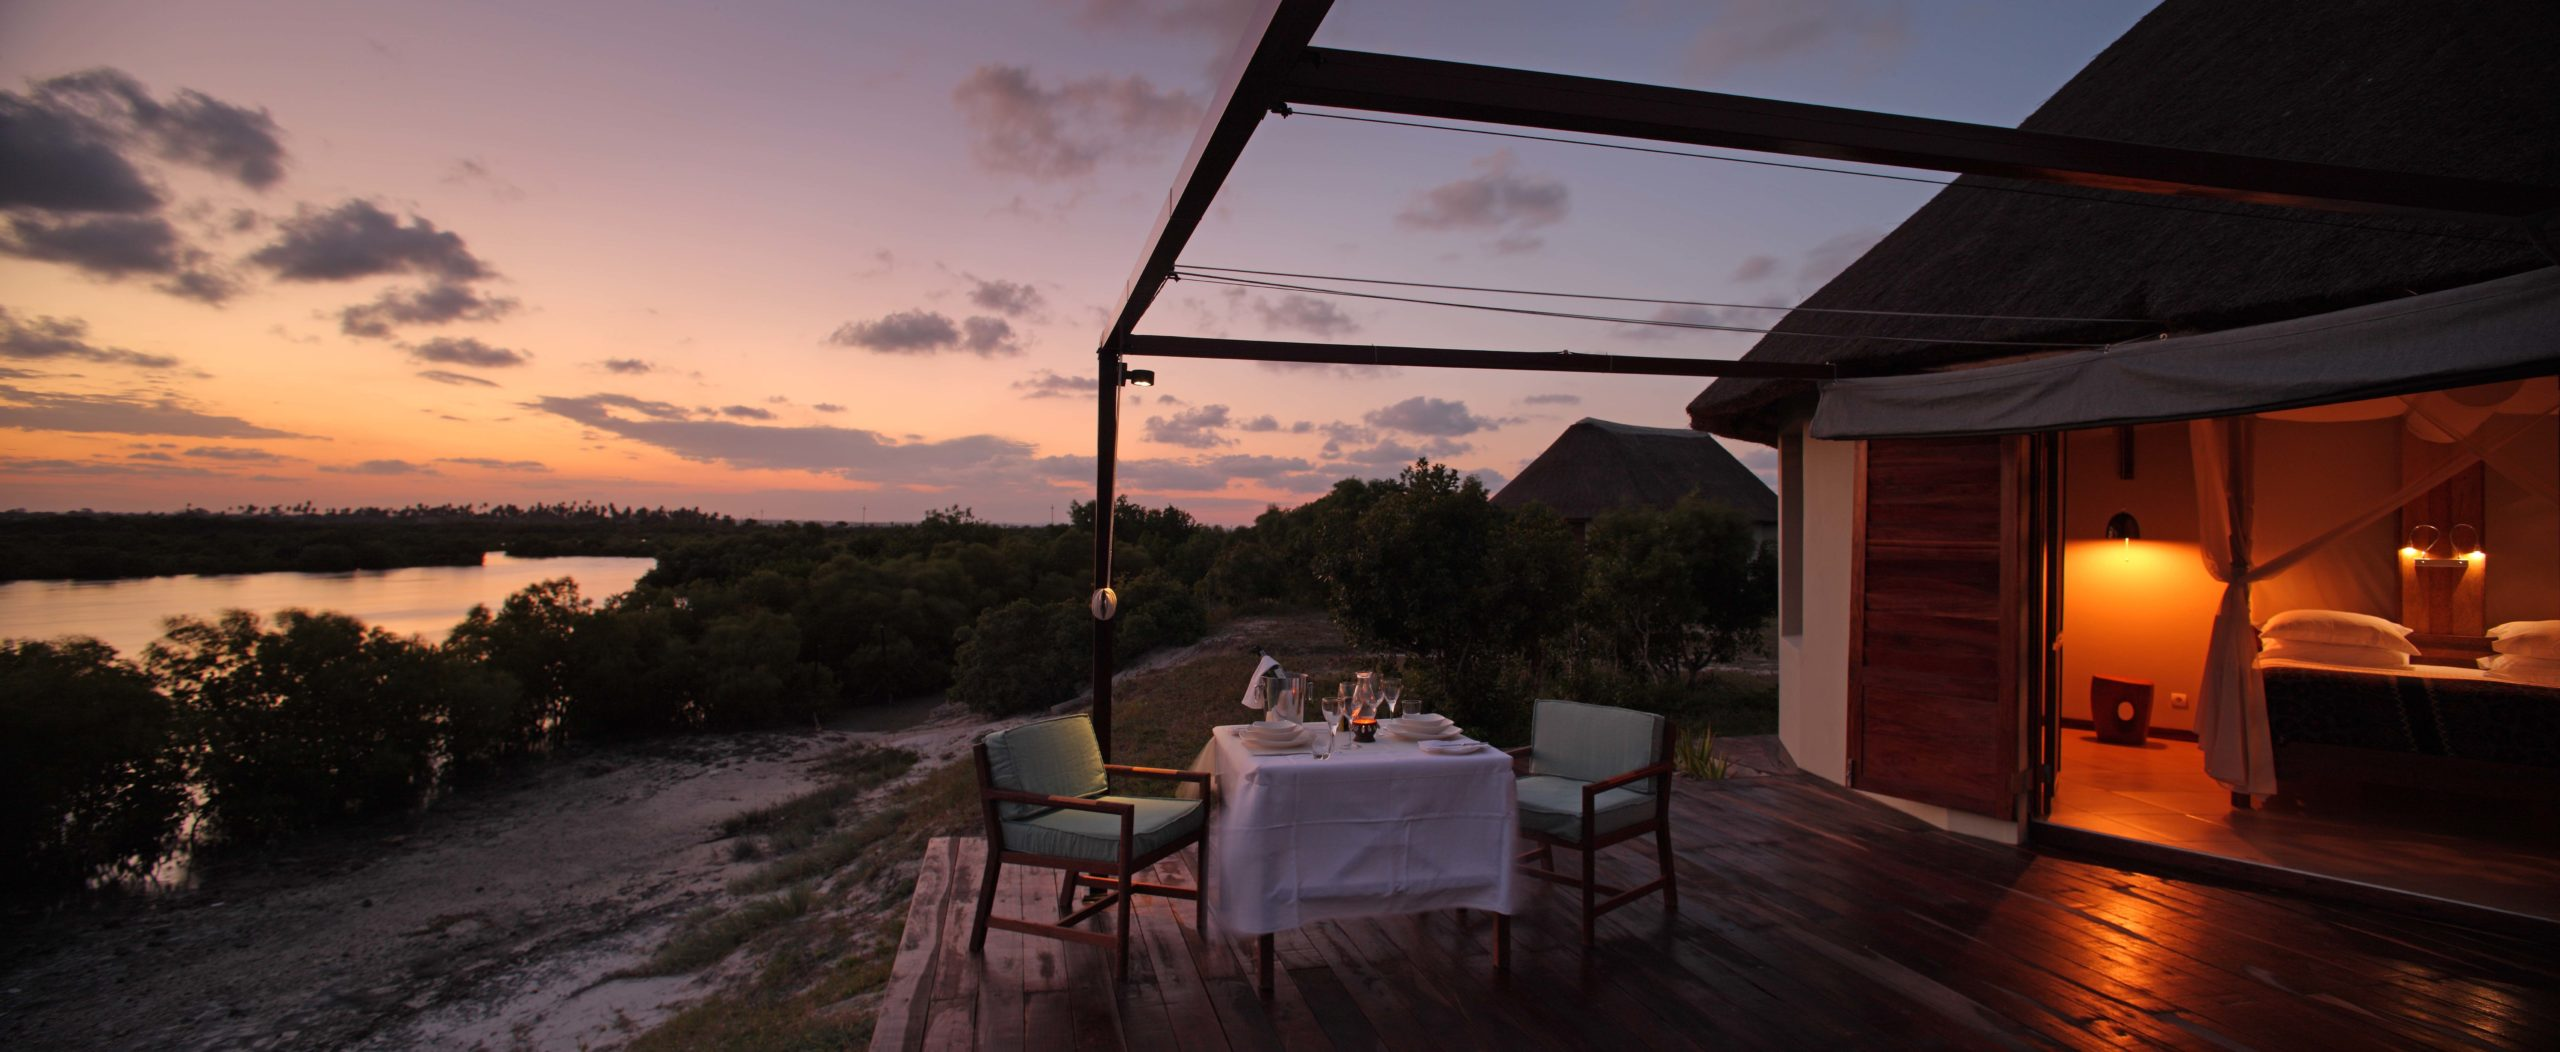 Coral Lodge Sunset Views